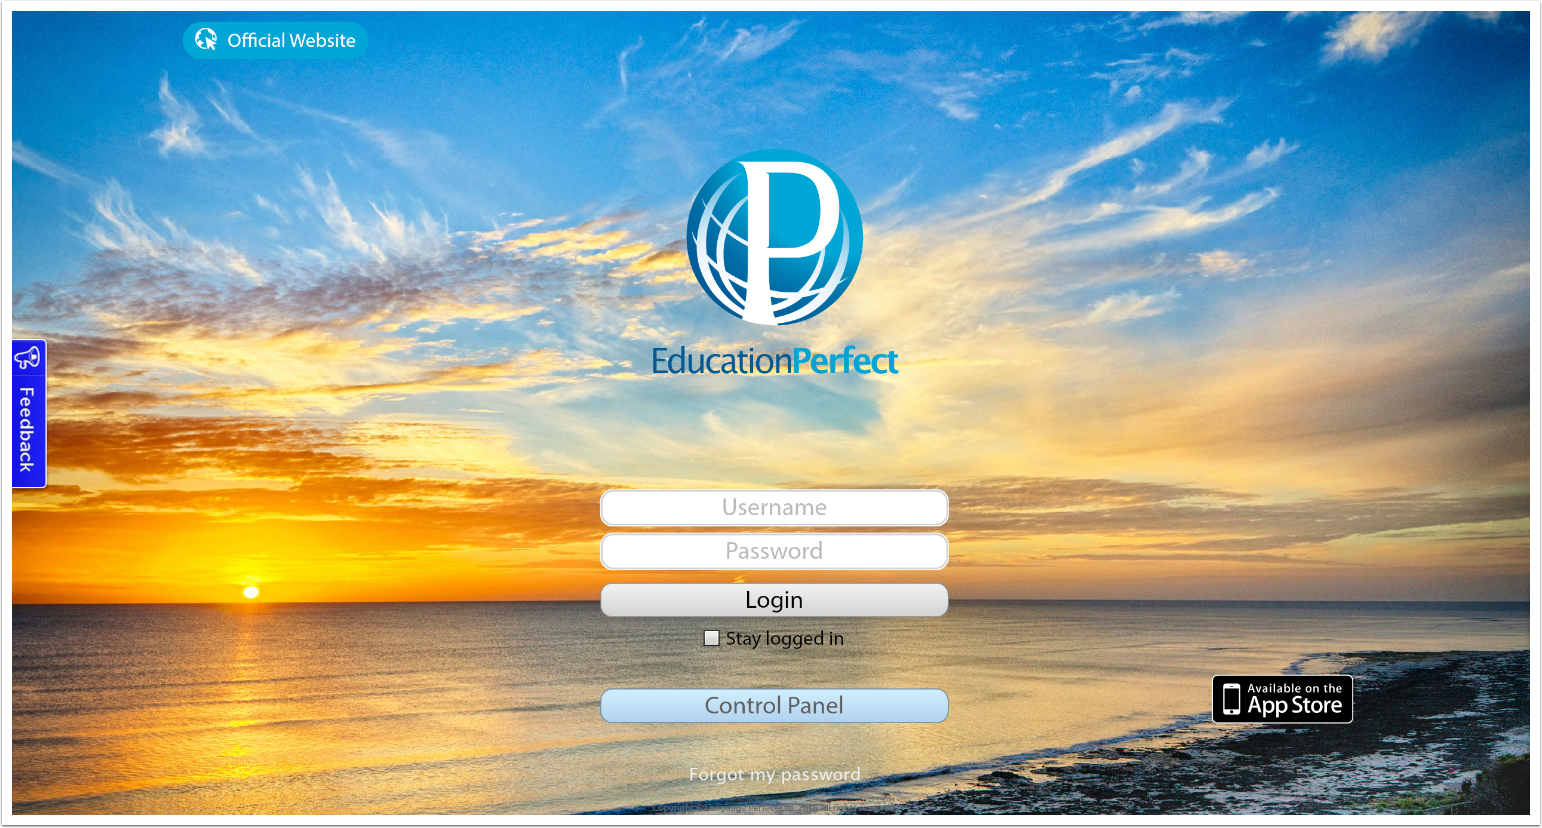 To get started, you'll need to go to www.educationperfect.com/login